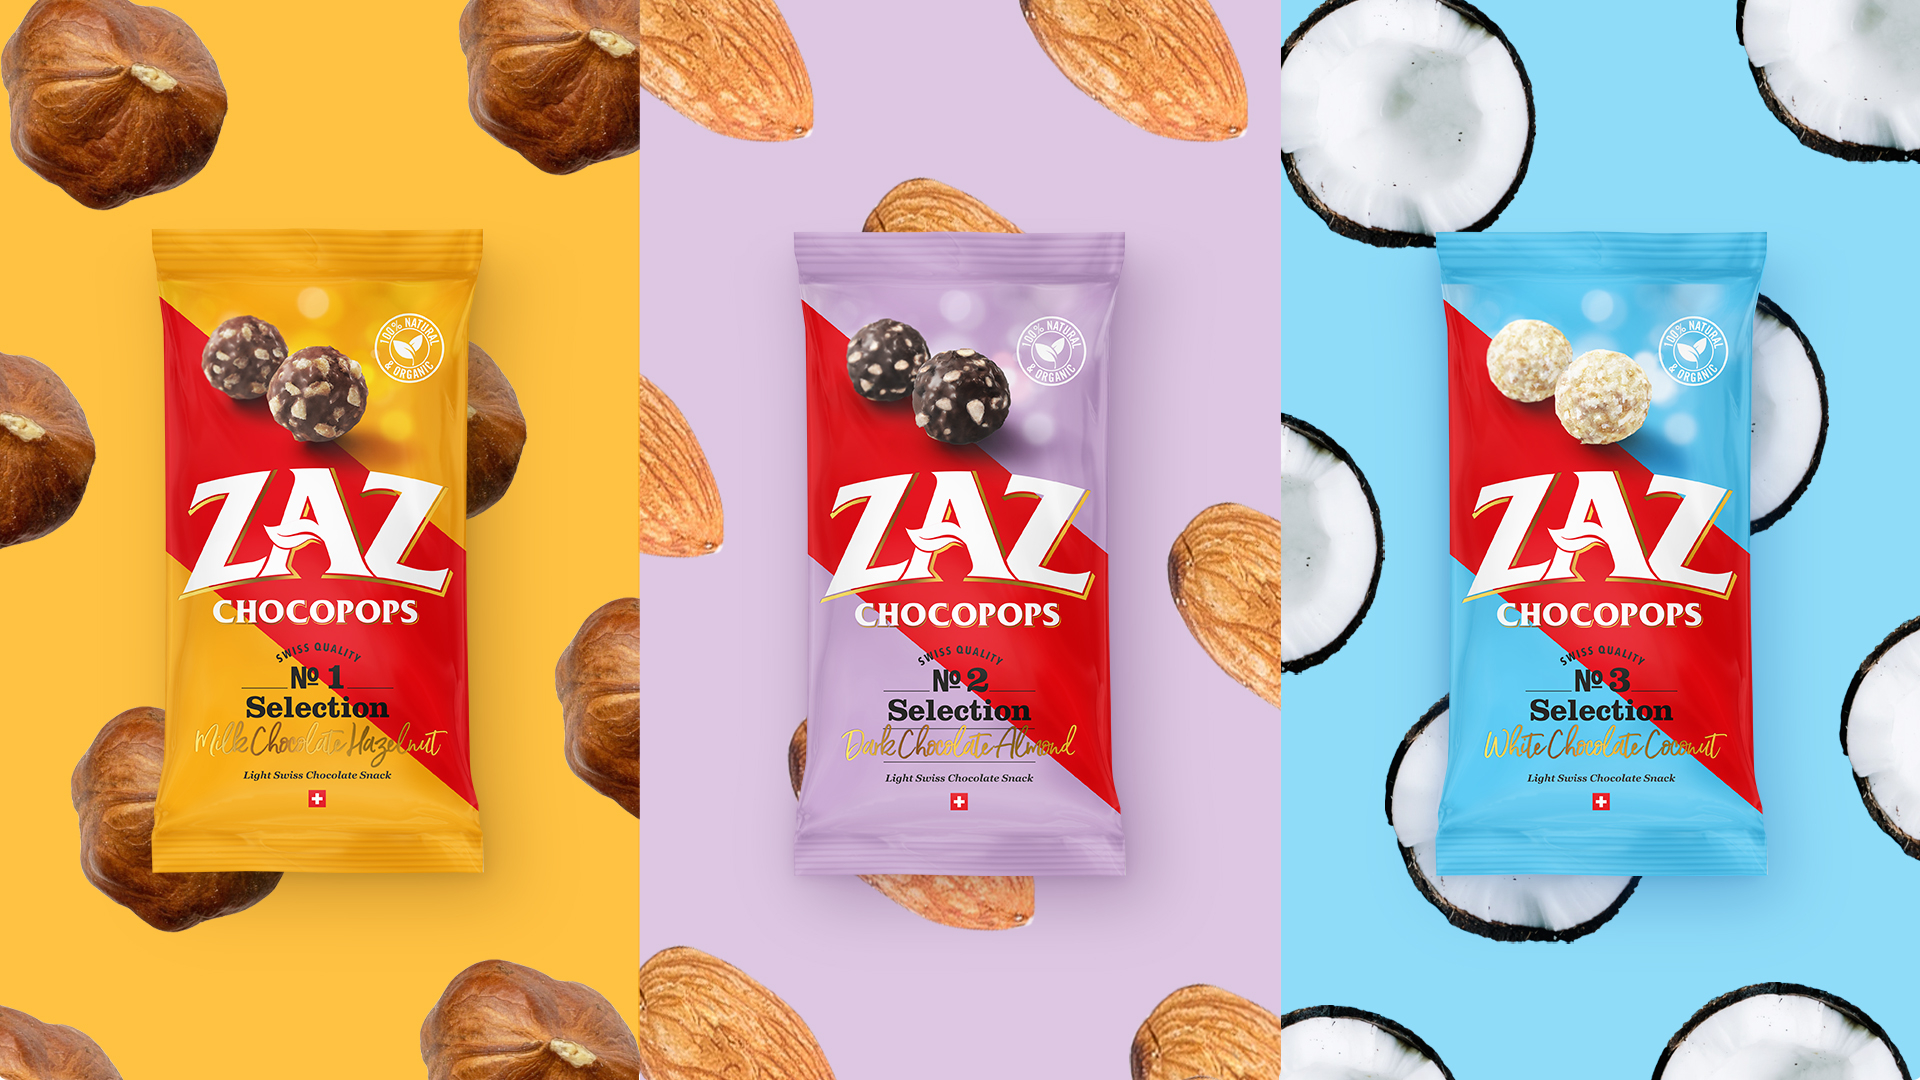 zaz-branding-and-packaging-range-pack-flavours